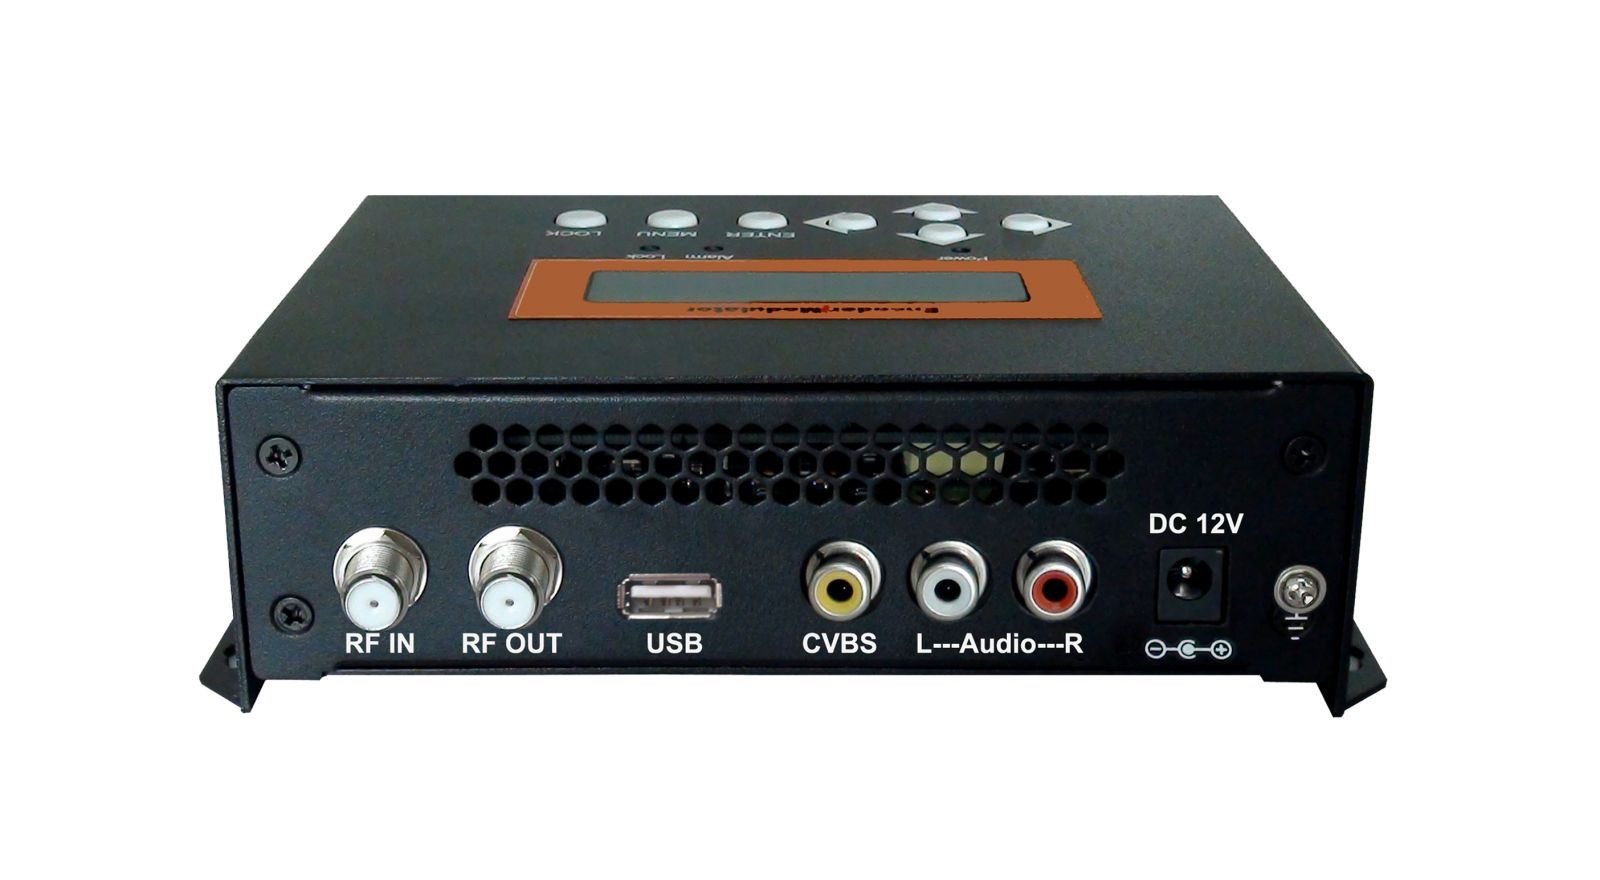 NDS3522A SD encoder modulator with USB